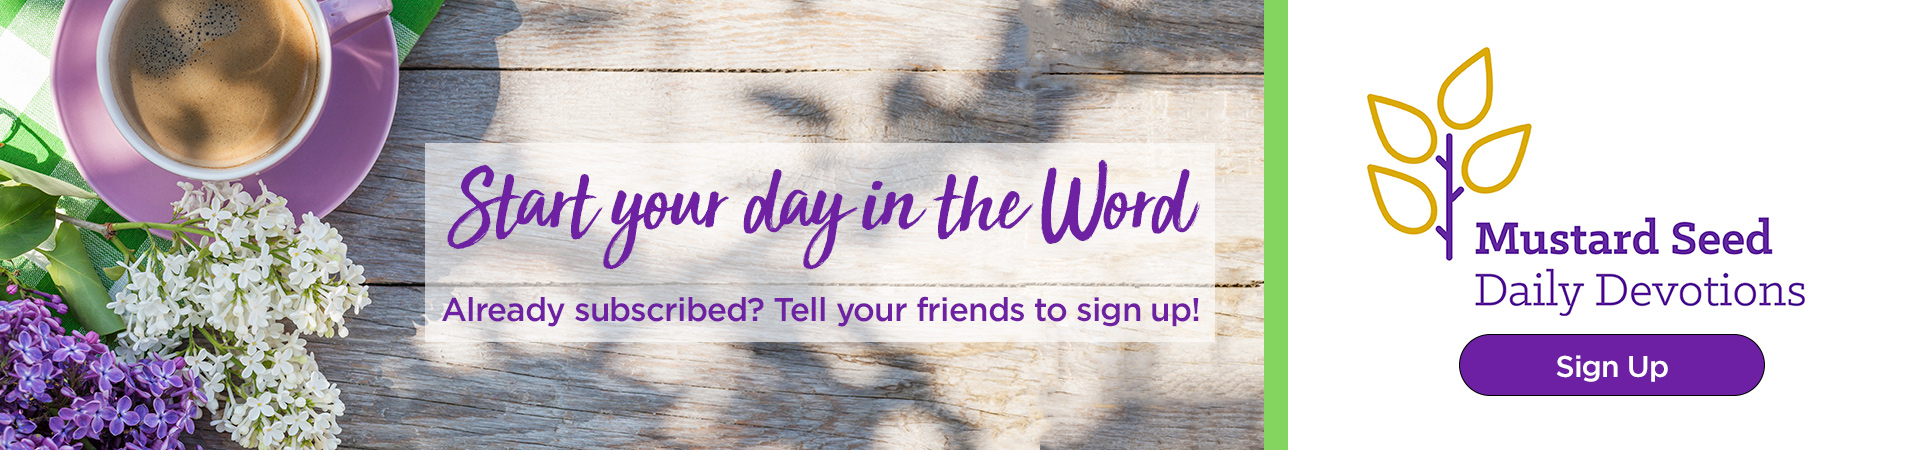 Start your day in the Word. Sign up for Mustard Seed Daily Devotions.